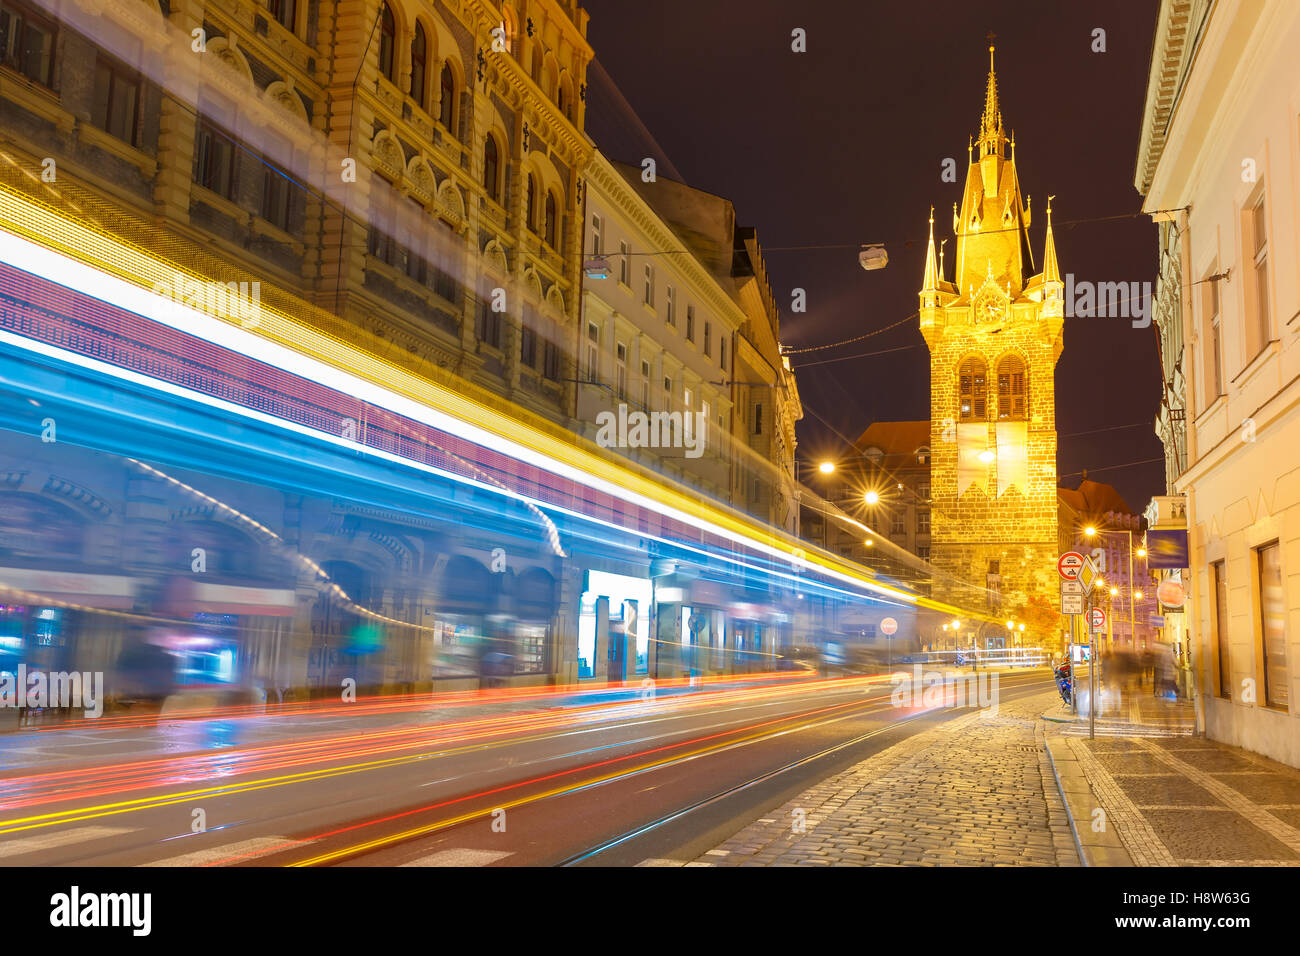 Luminous track from the tram in Prague, Czech - Stock Image